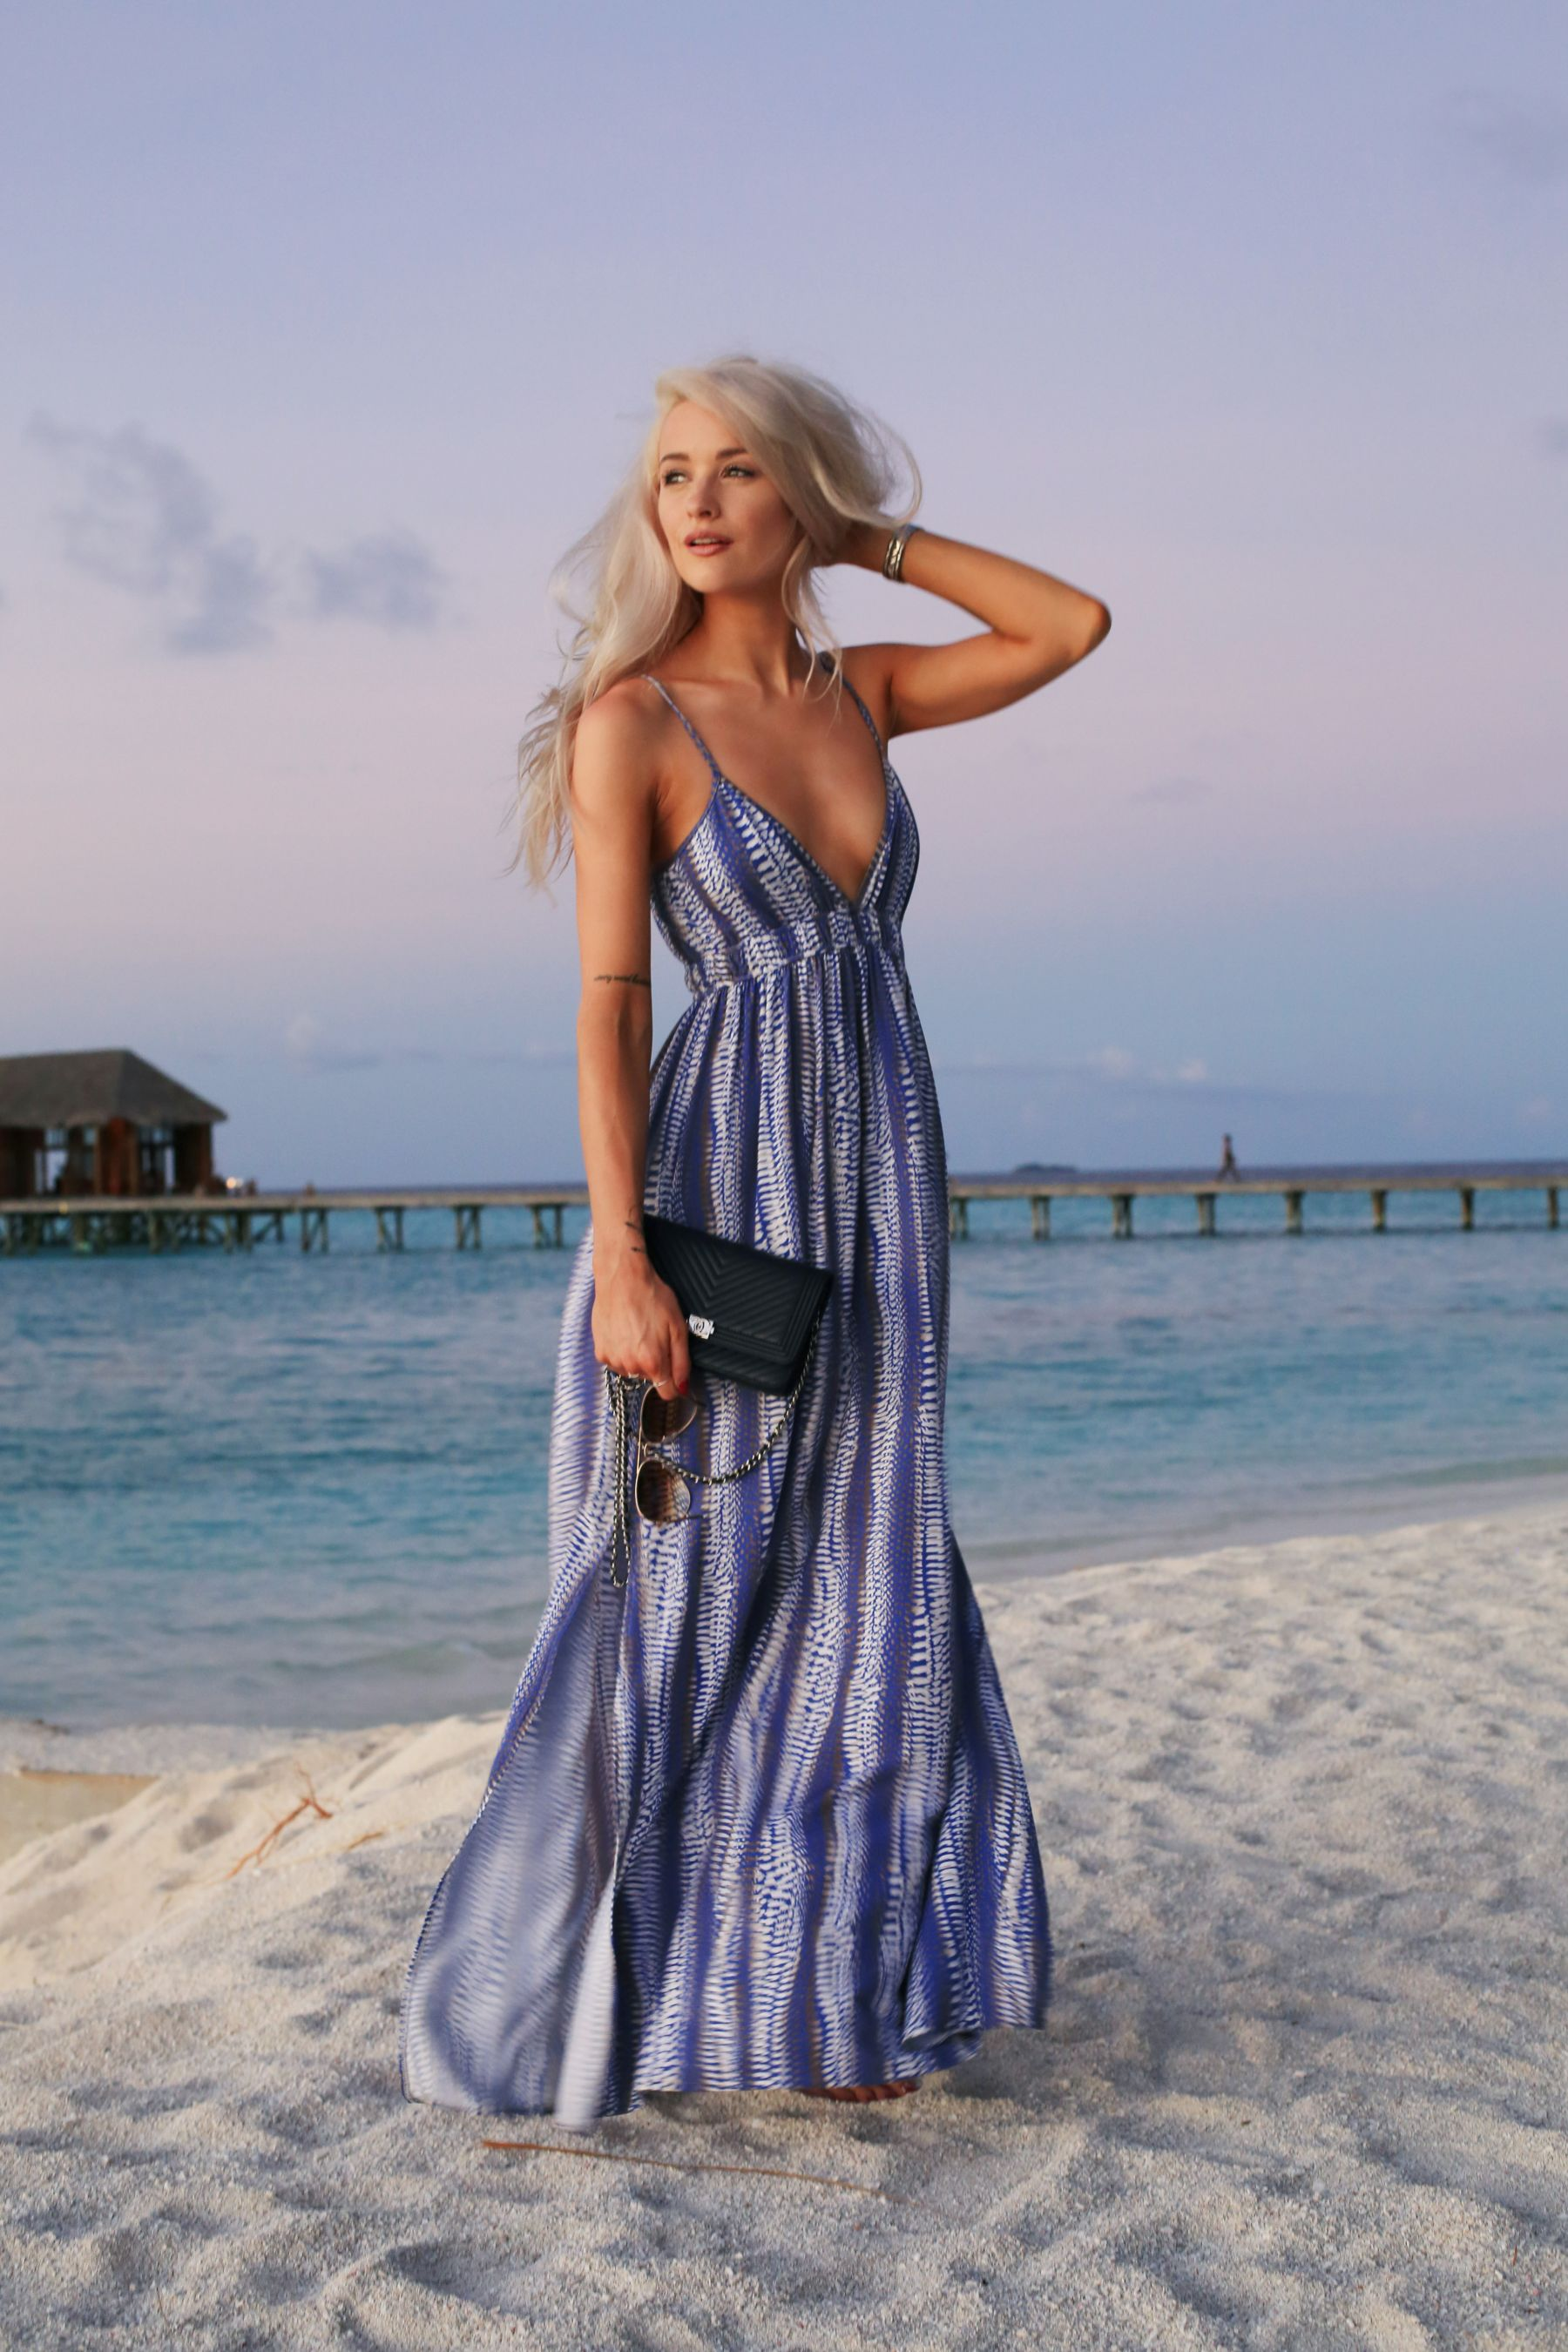 Evening Holiday Outfits Maxis and Jumpsuits - Inthefrow